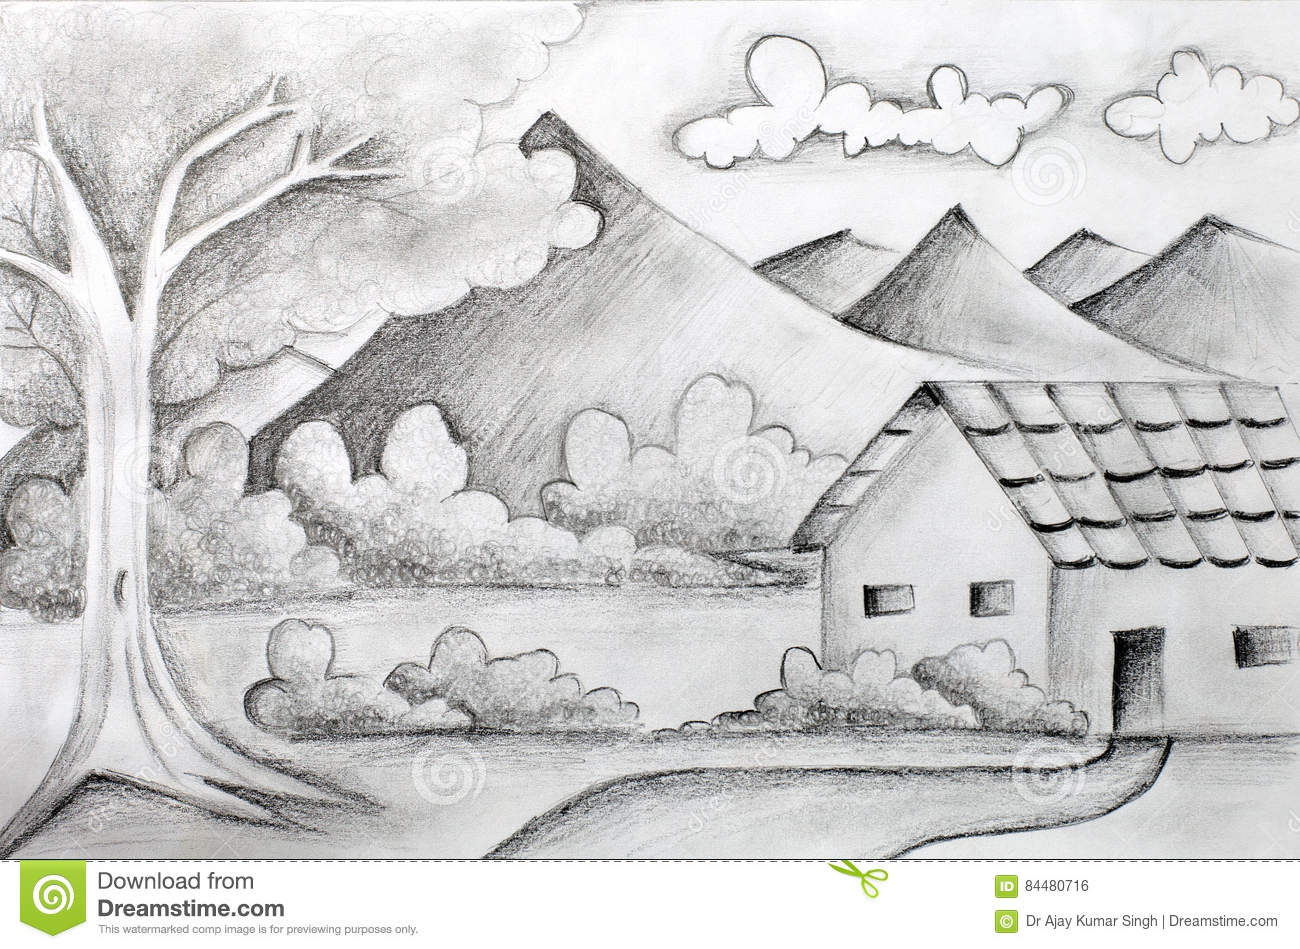 A pencil sketch of mountains tree and cloud drawn